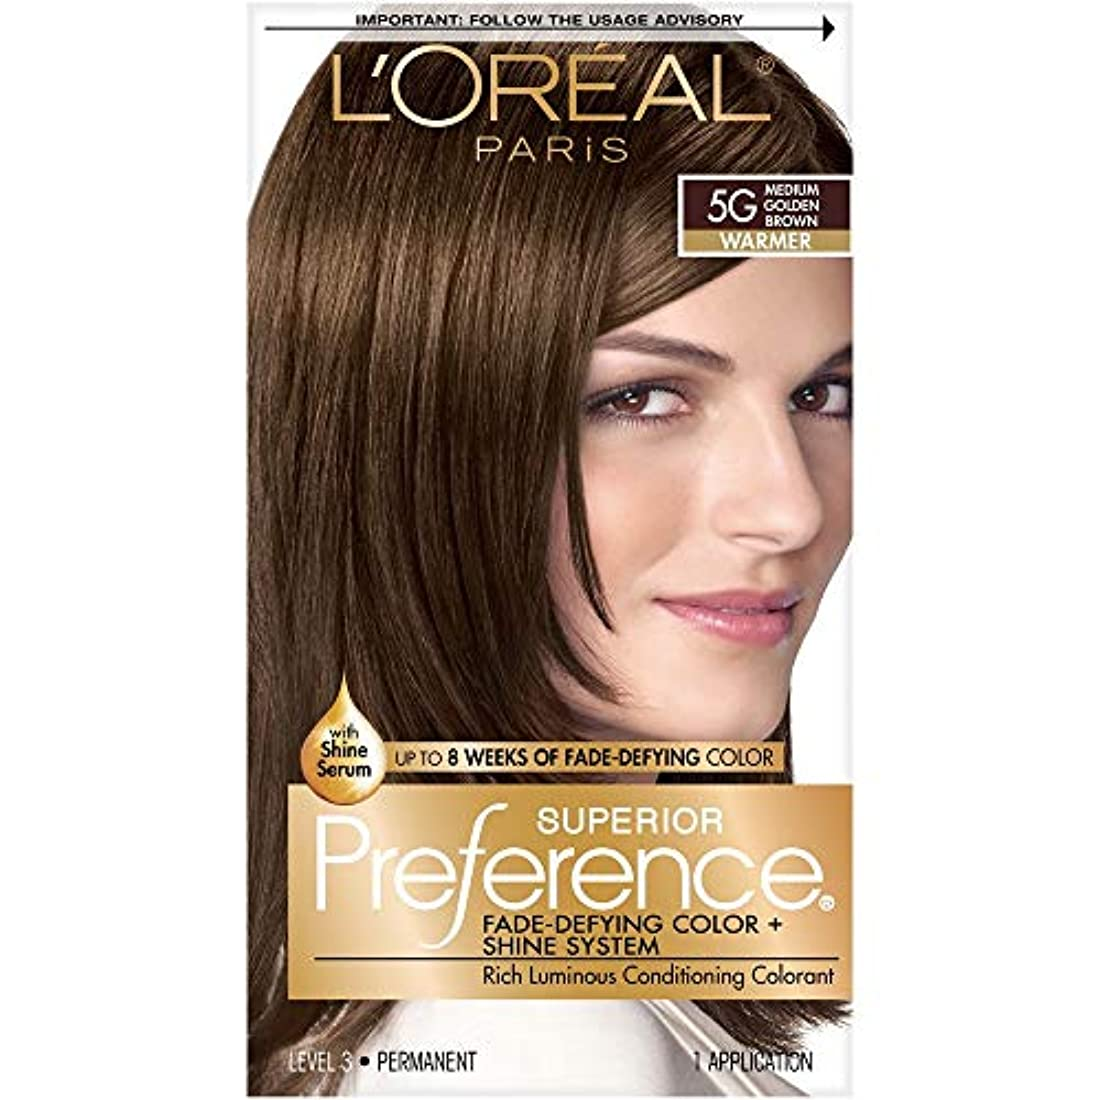 欲求不満役割シート海外直送肘 LOreal Superior Preference Hair Color 5G Medium Golden Brown, Medium Golden Brown 1 each